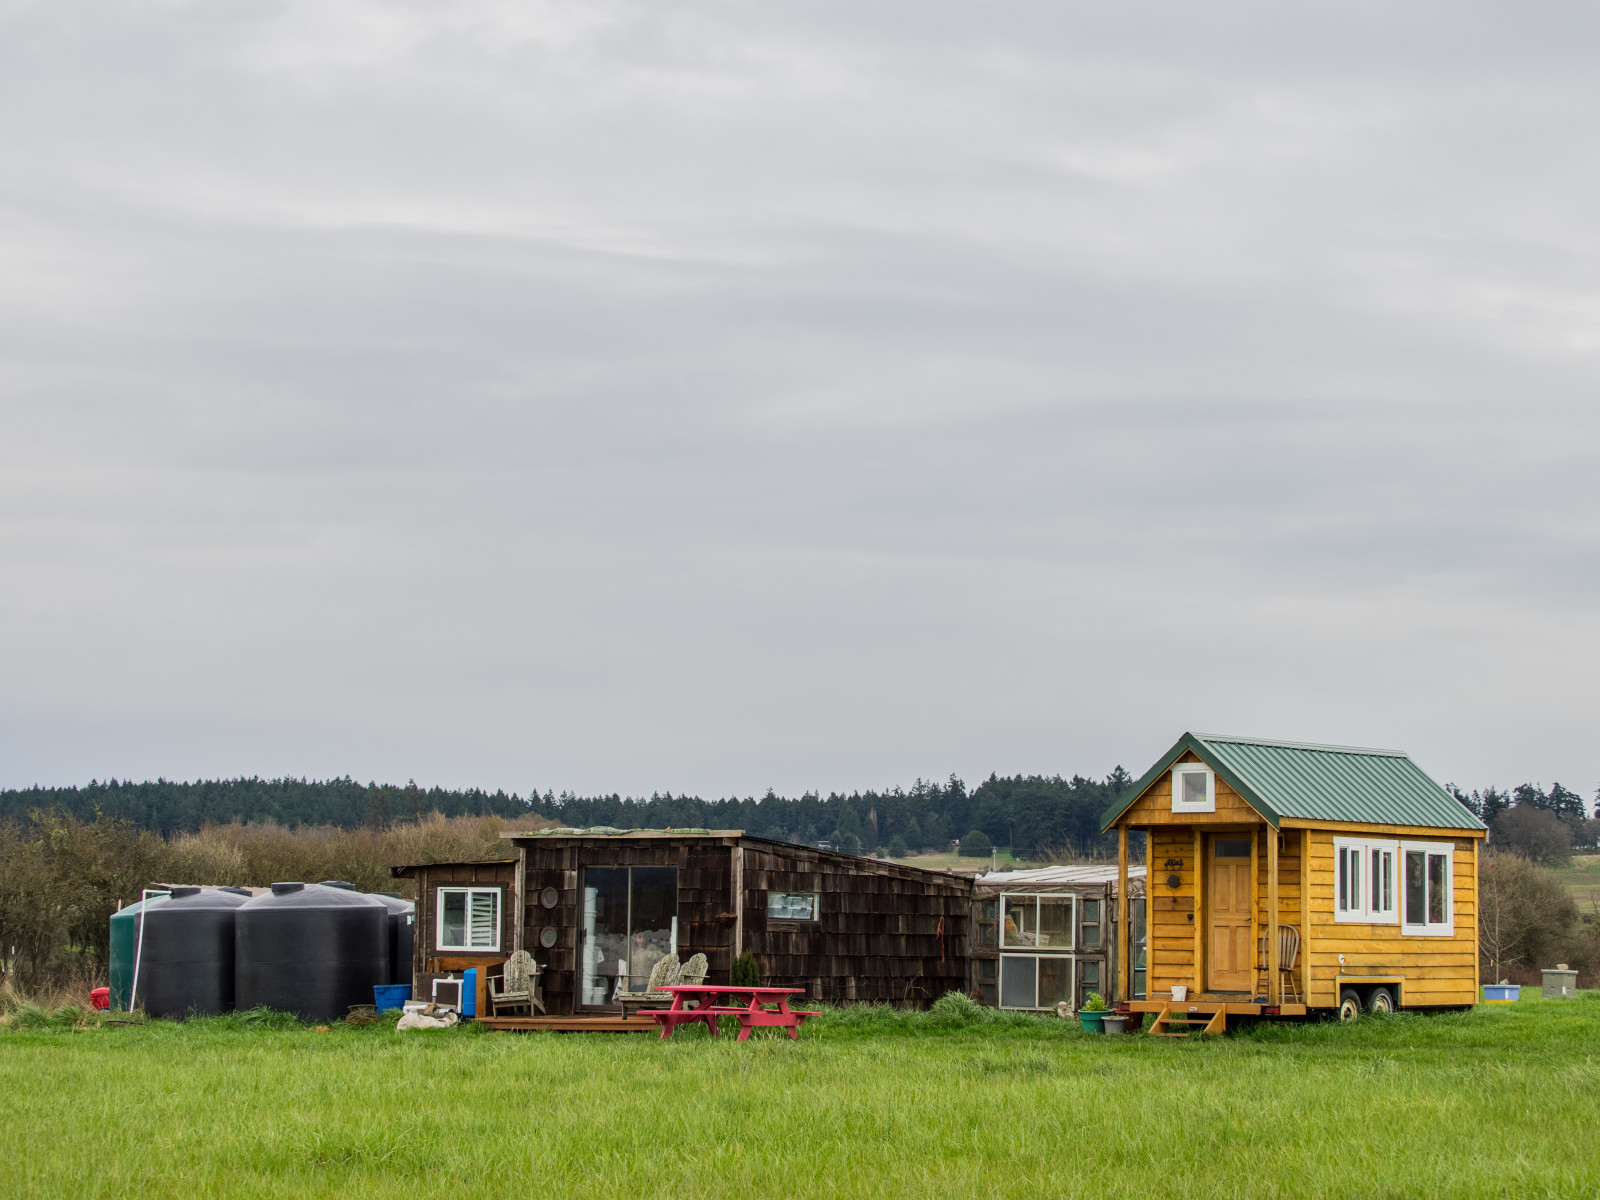 Advice On Building A House building advice for the tiny home enthusiast - zillow porchlight